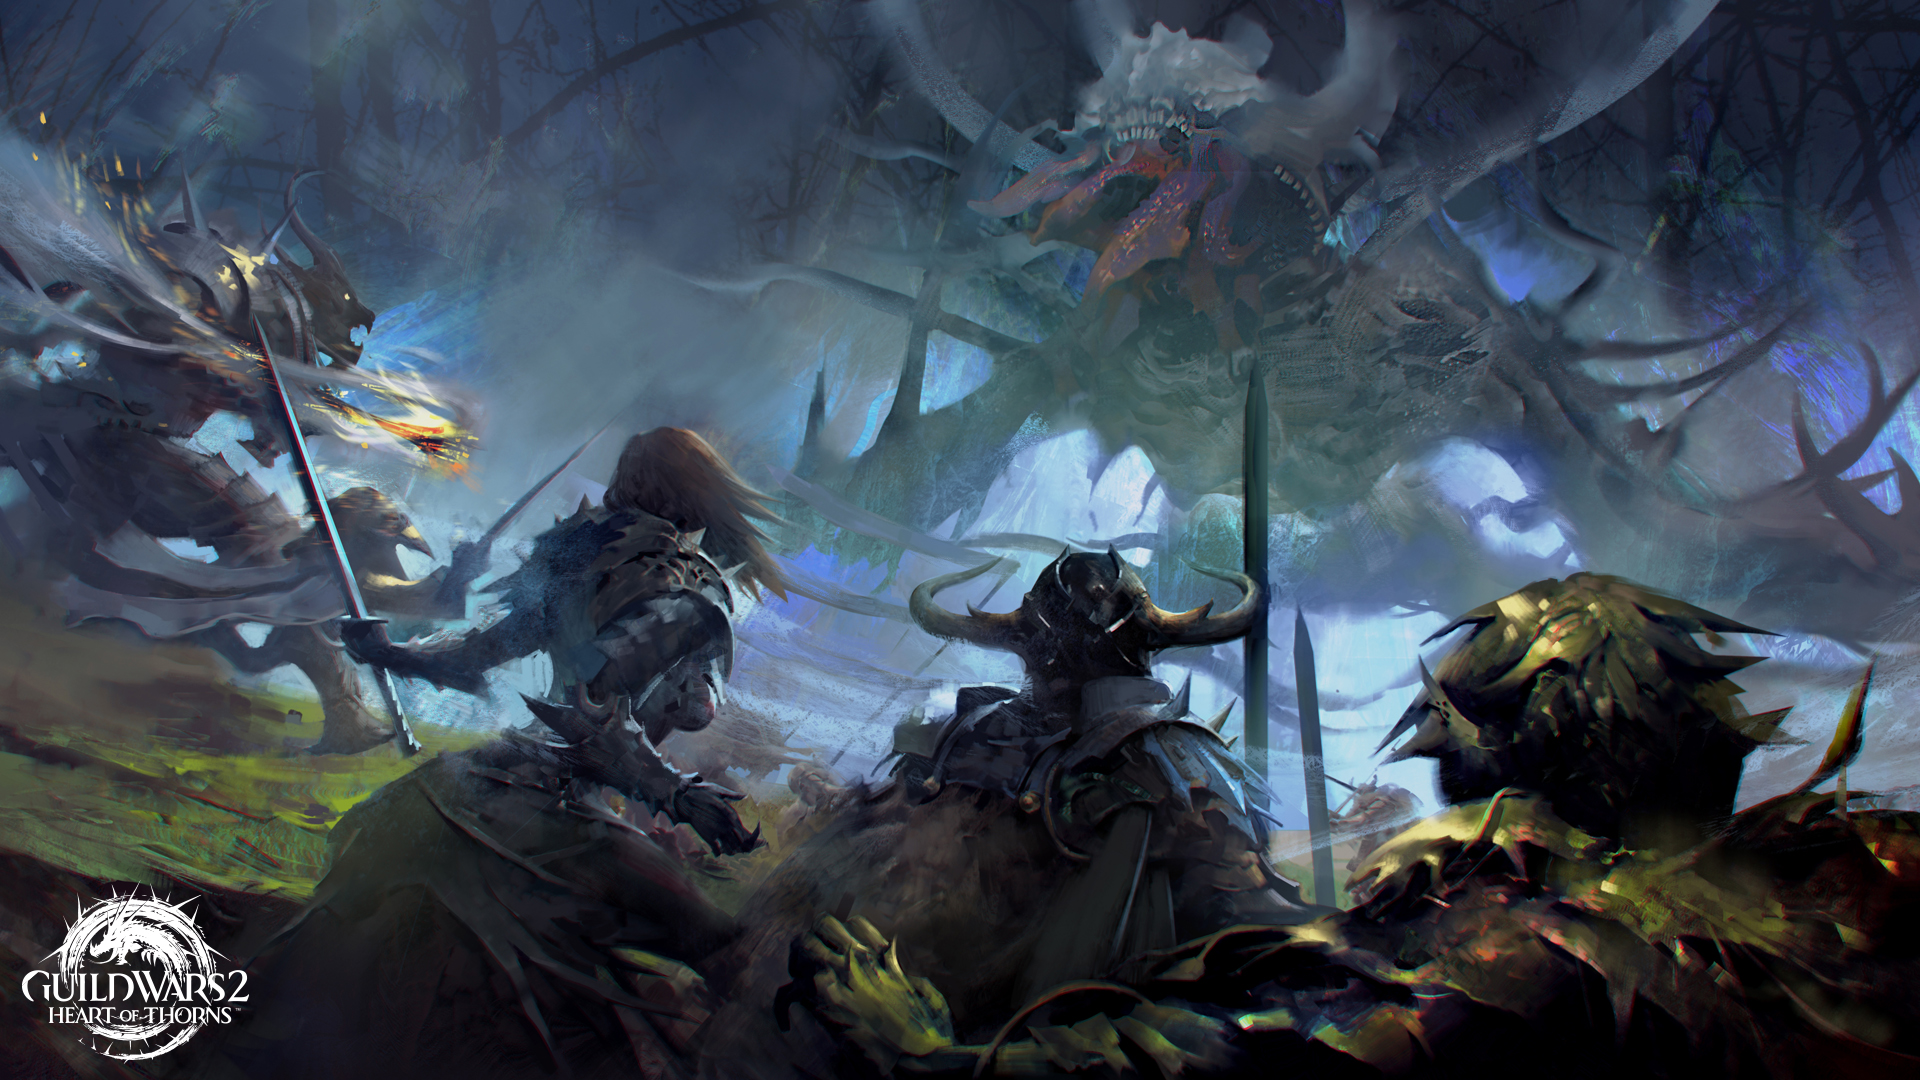 an analysis of the video game for guild wars 2 As a company we always strive to have a collaborative relationship with the guild wars community we value your input we make this game for you fries had worked with arenanet for 13 years, price had been with the guild wars 2 narrative team for just under a year.